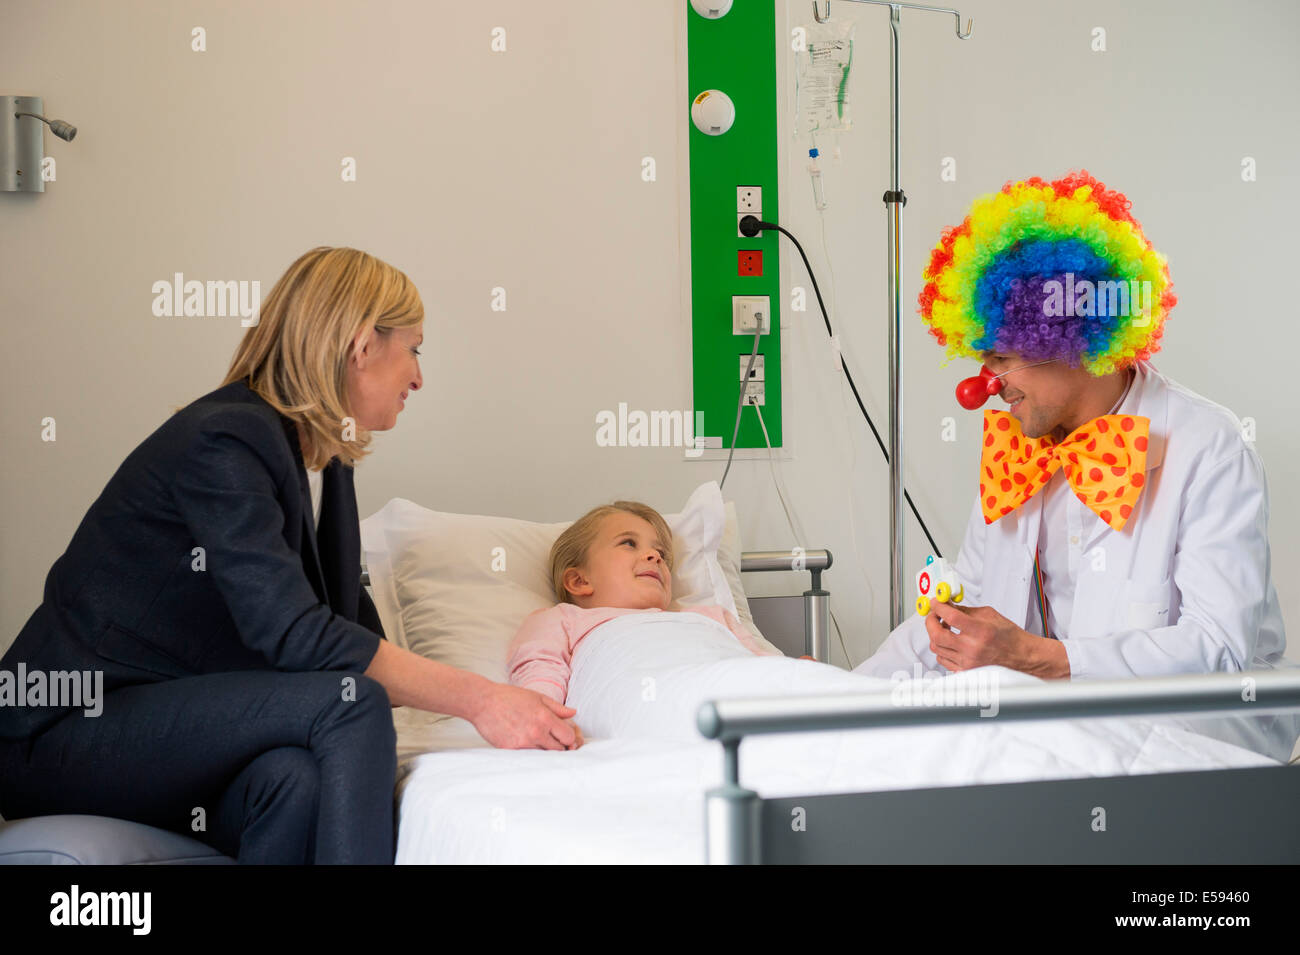 Male doctor wearing clown costume making girl patient smile in hospital bed - Stock Image